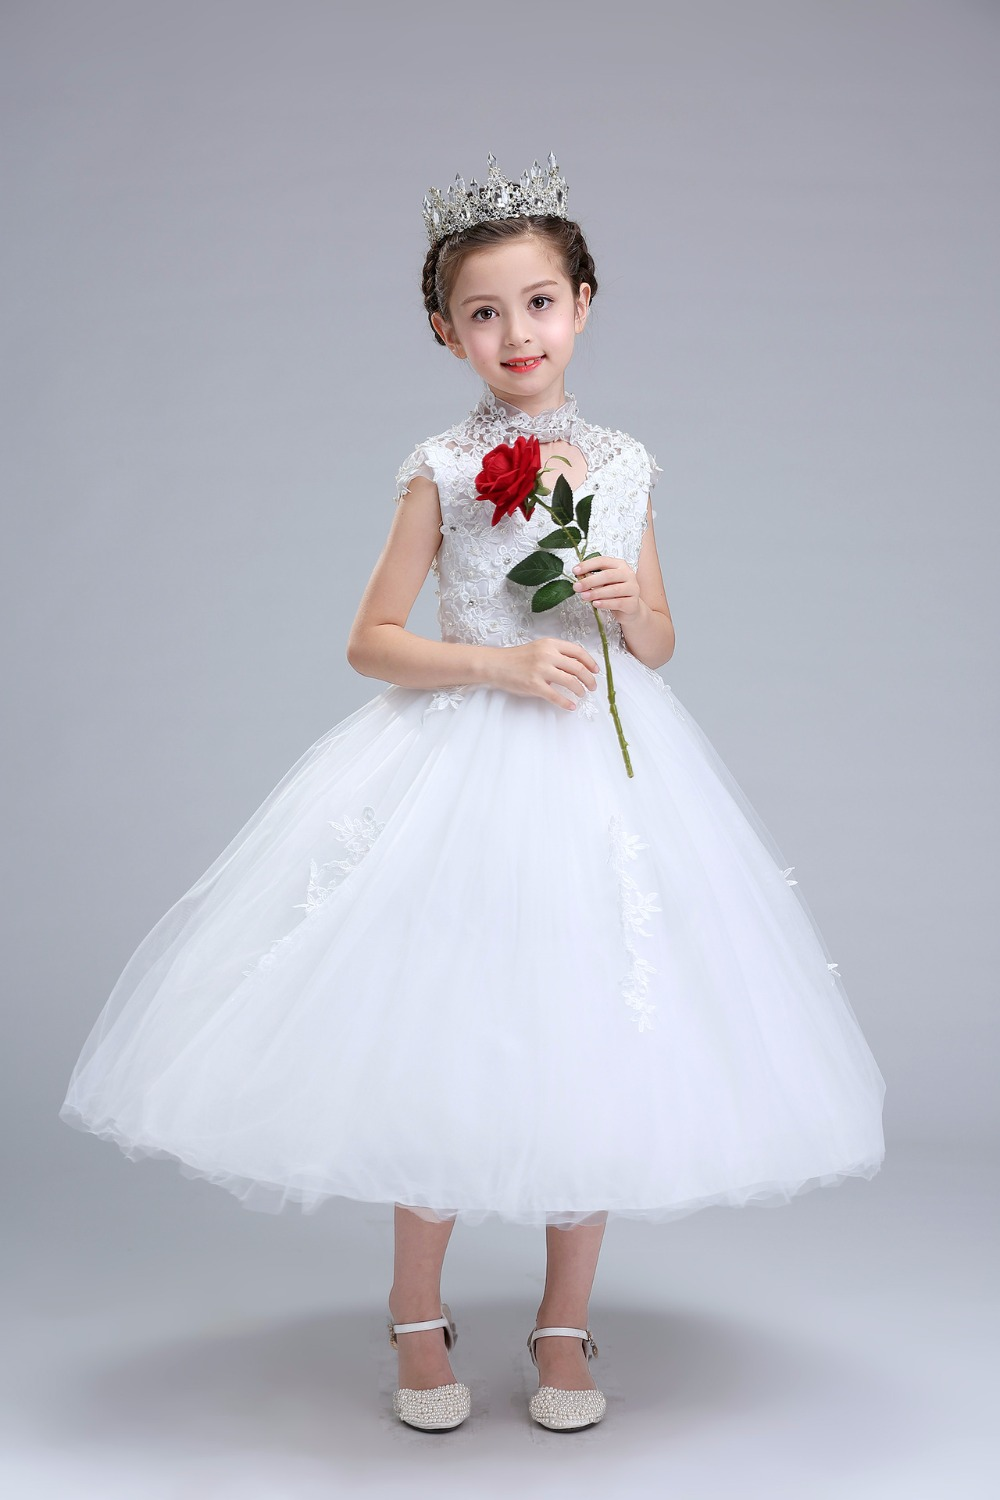 Glizt Sequin Girls Wedding Dresses 2017 New Bead White Tulle Princess Costume Girls Formal Ceremonies Party